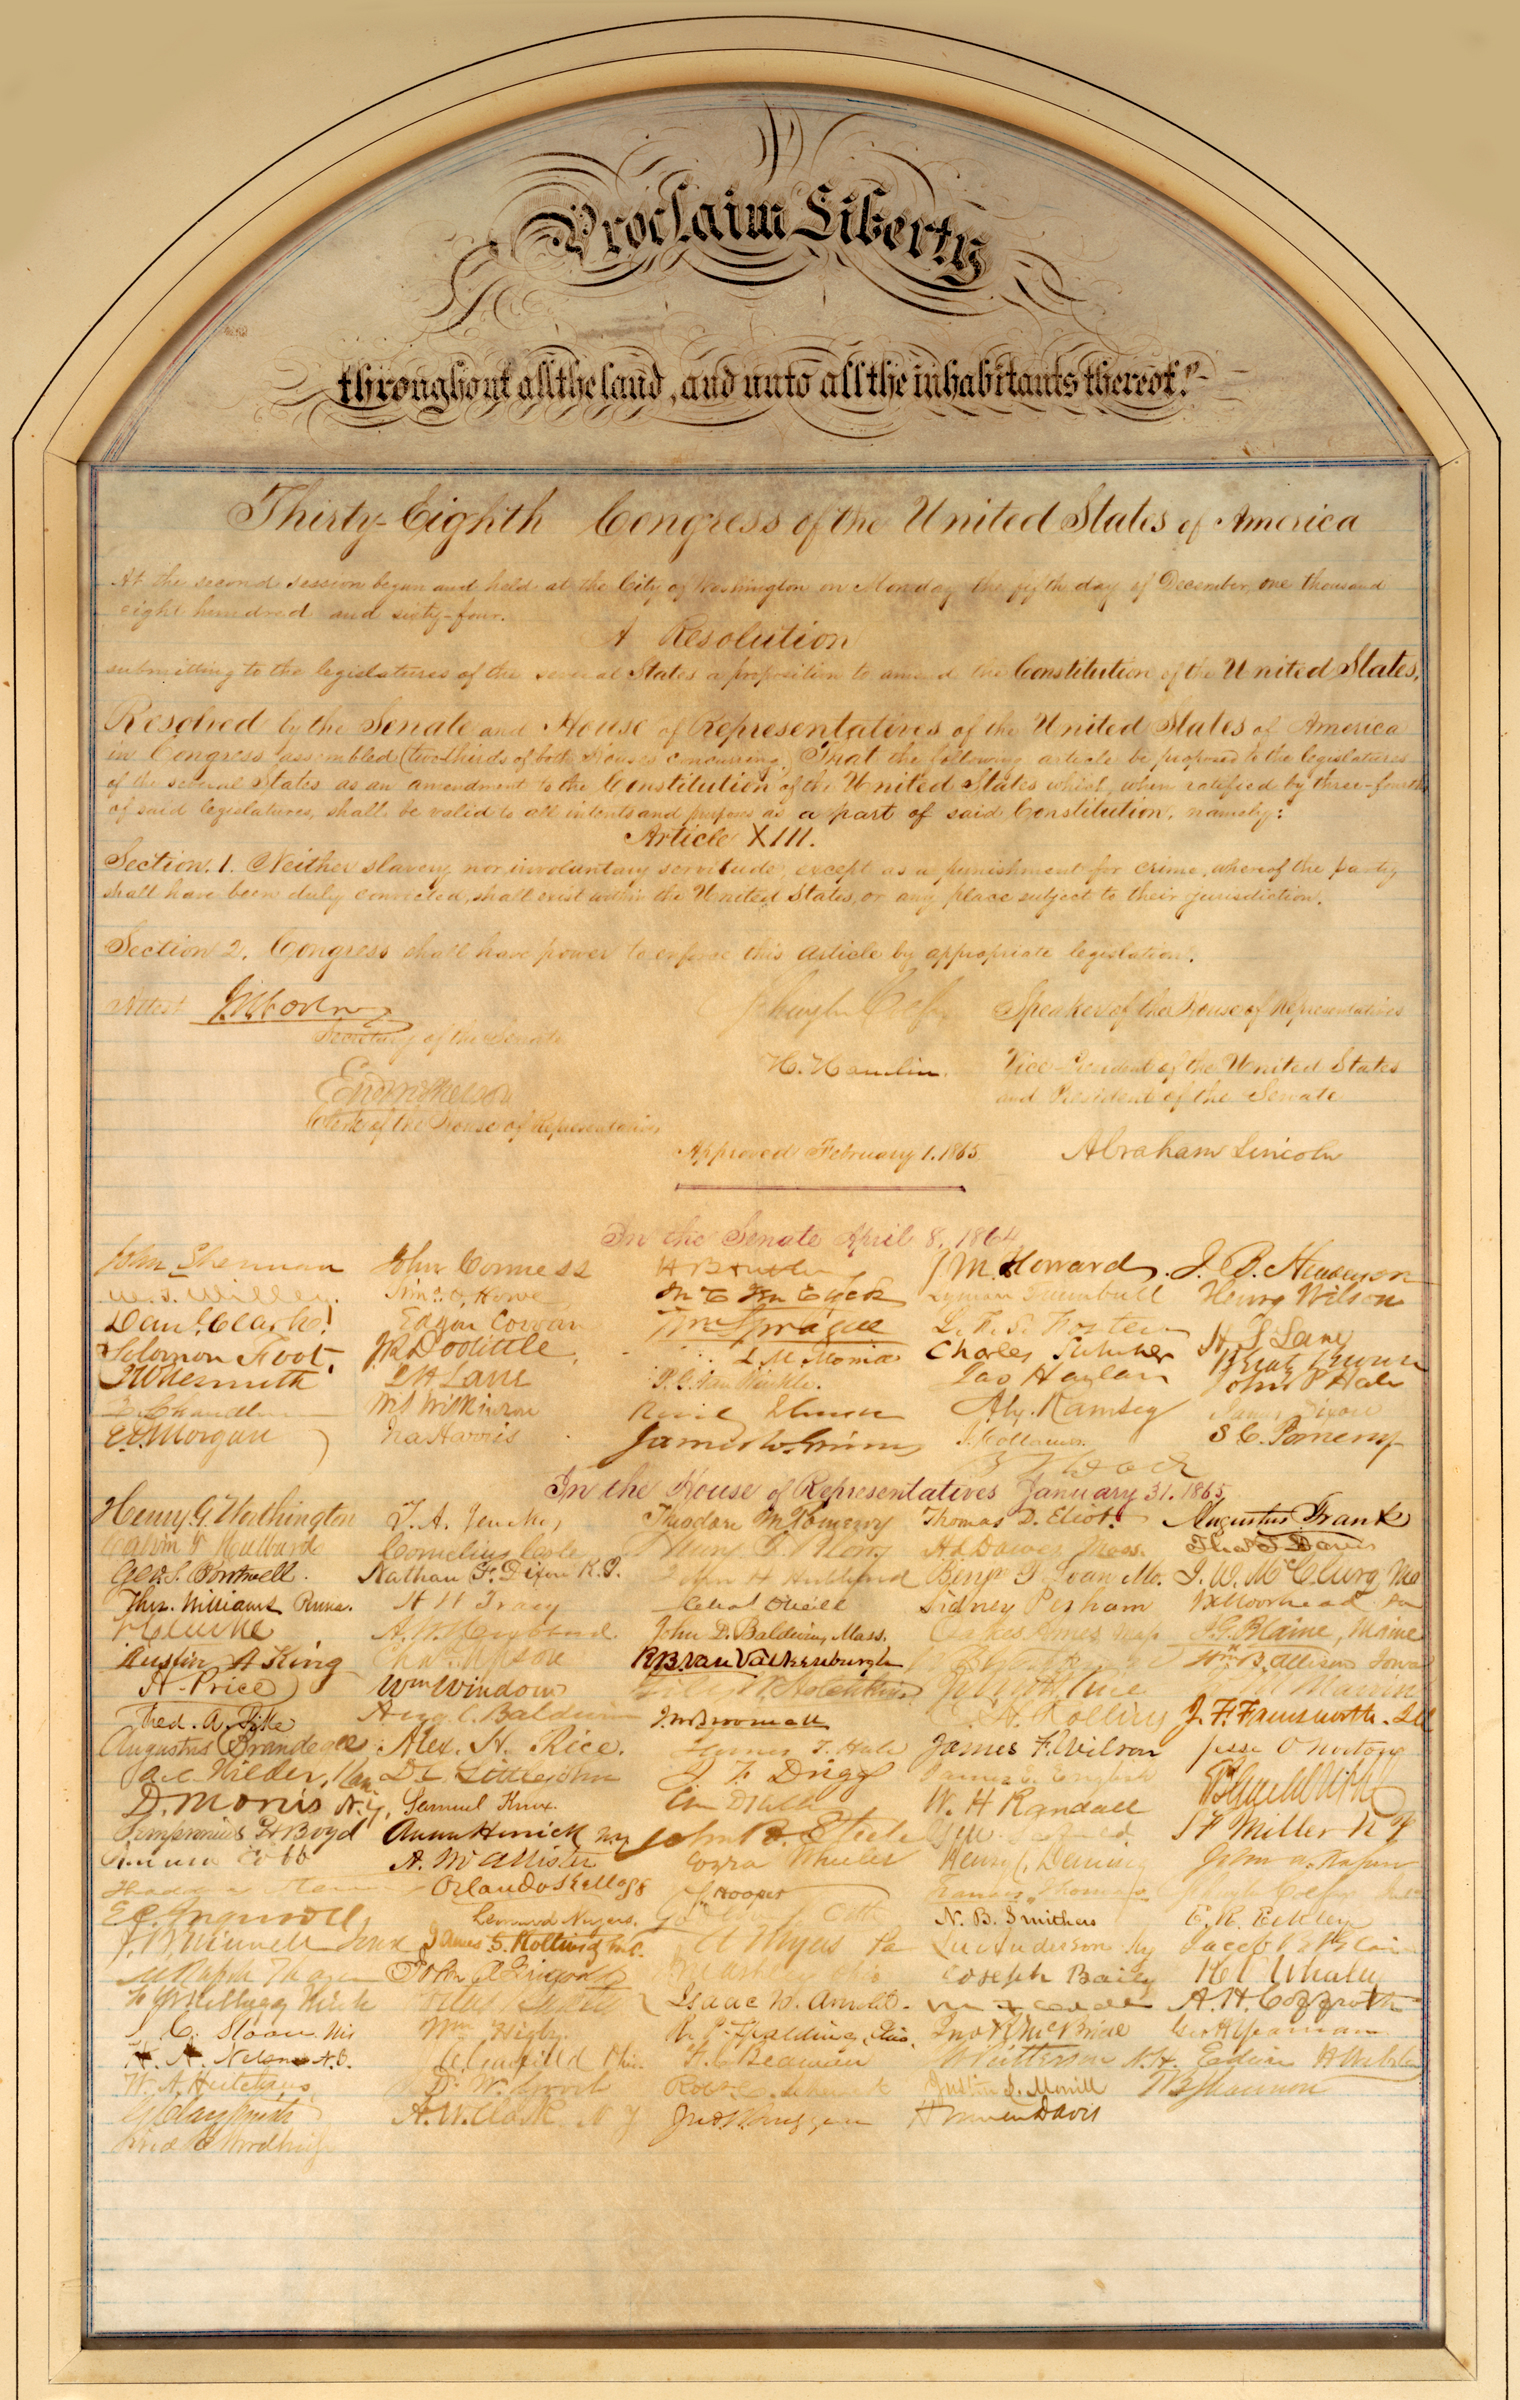 abraham lincoln emancipation proclamation essay This website is intended to look at president abraham lincoln's 1863 emancipation proclamation as a politically motivated reaction to the civil war the 1863.